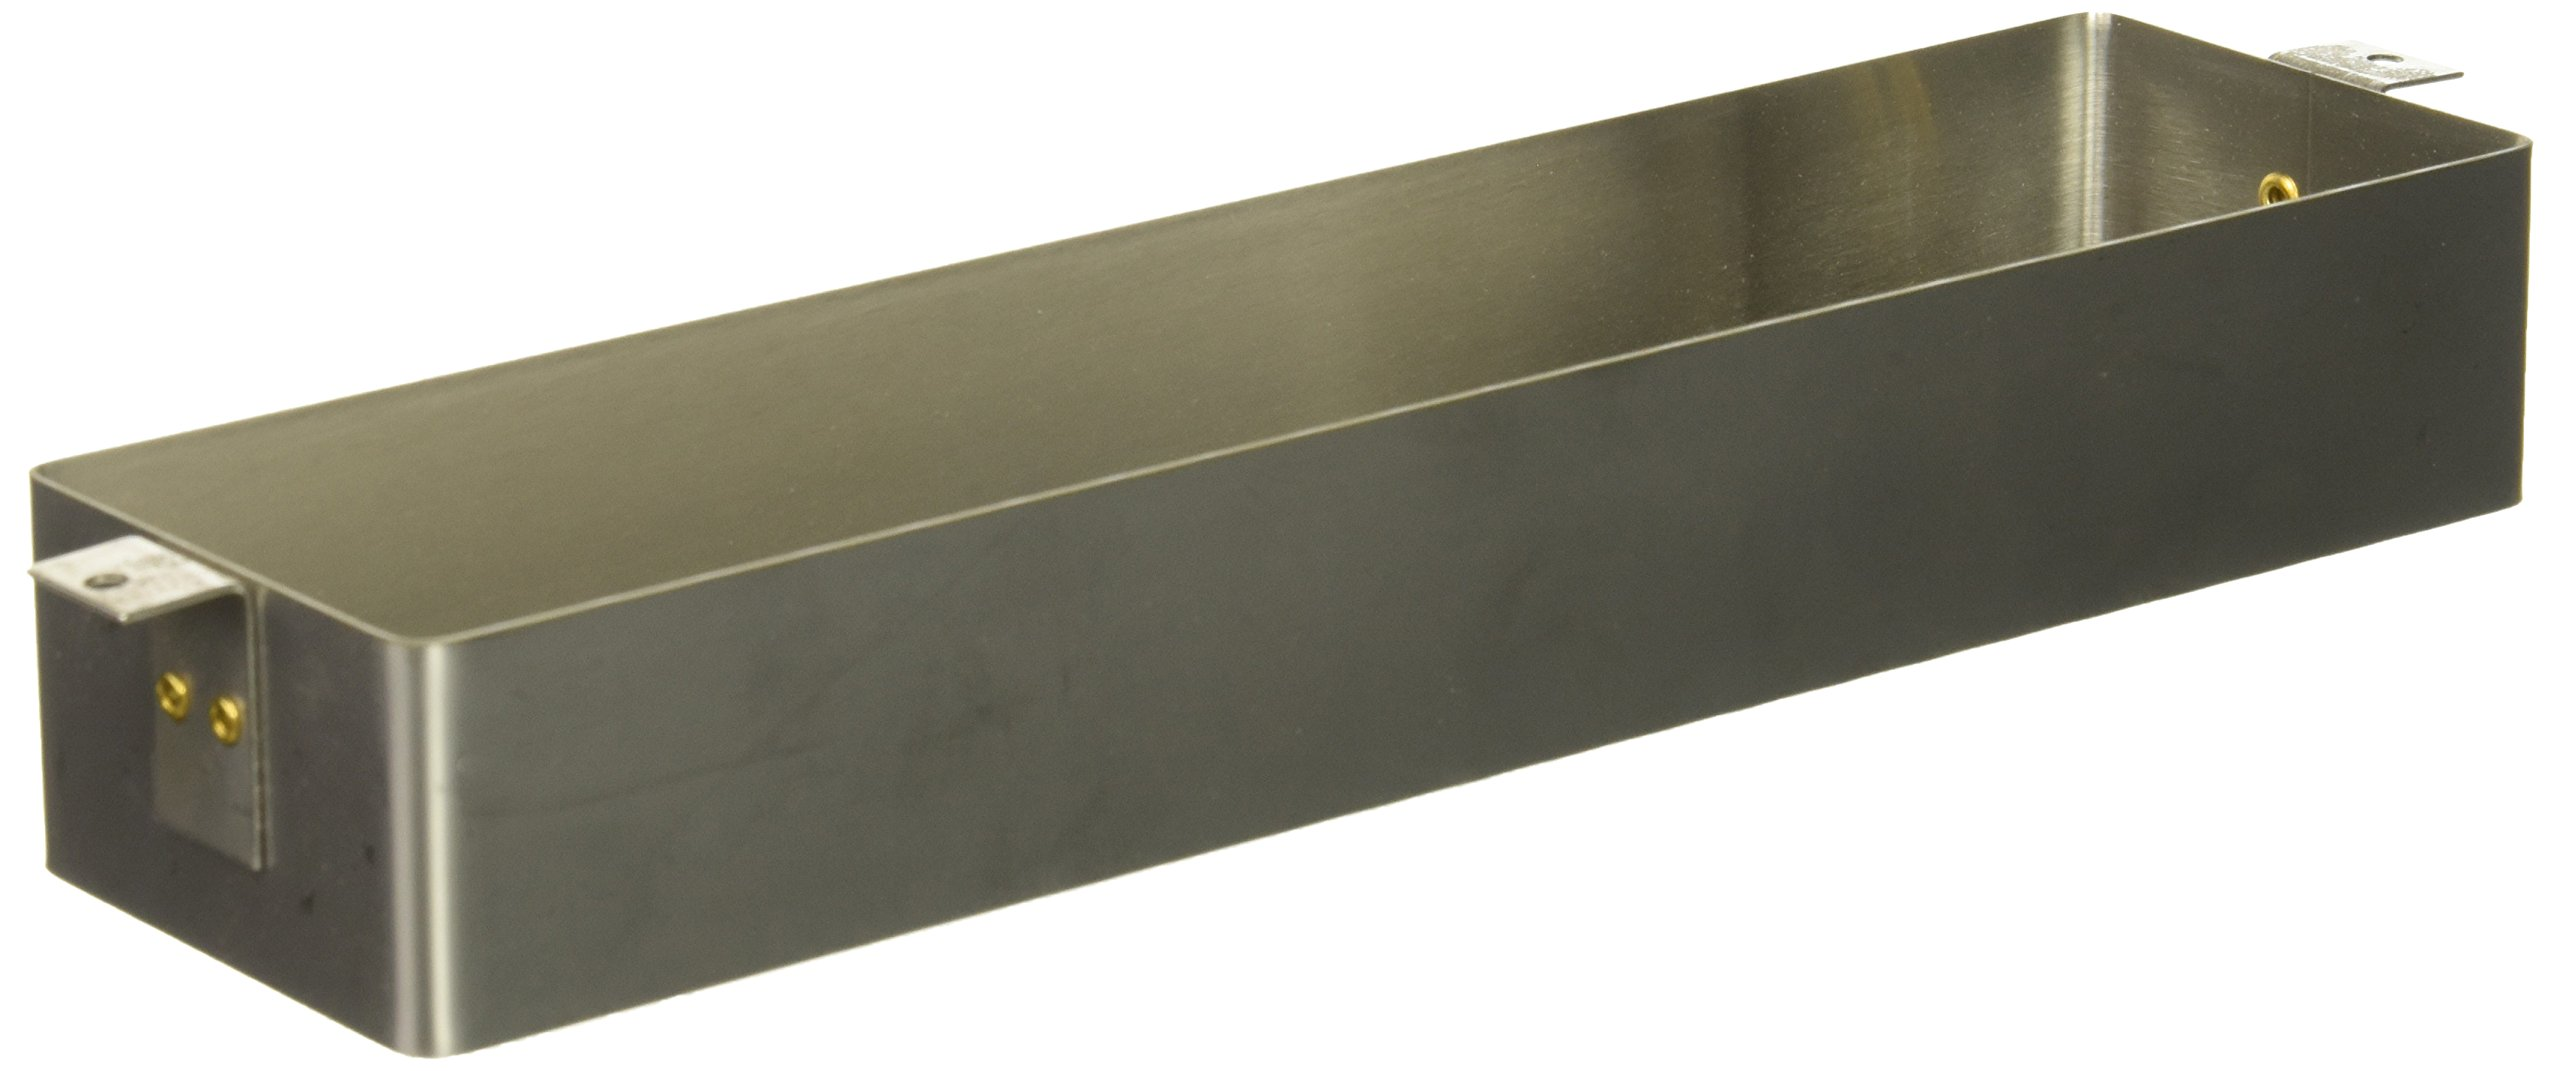 Baldwin 0052.324 Package Size Letter Box Sleeve, Satin Stainless Steel